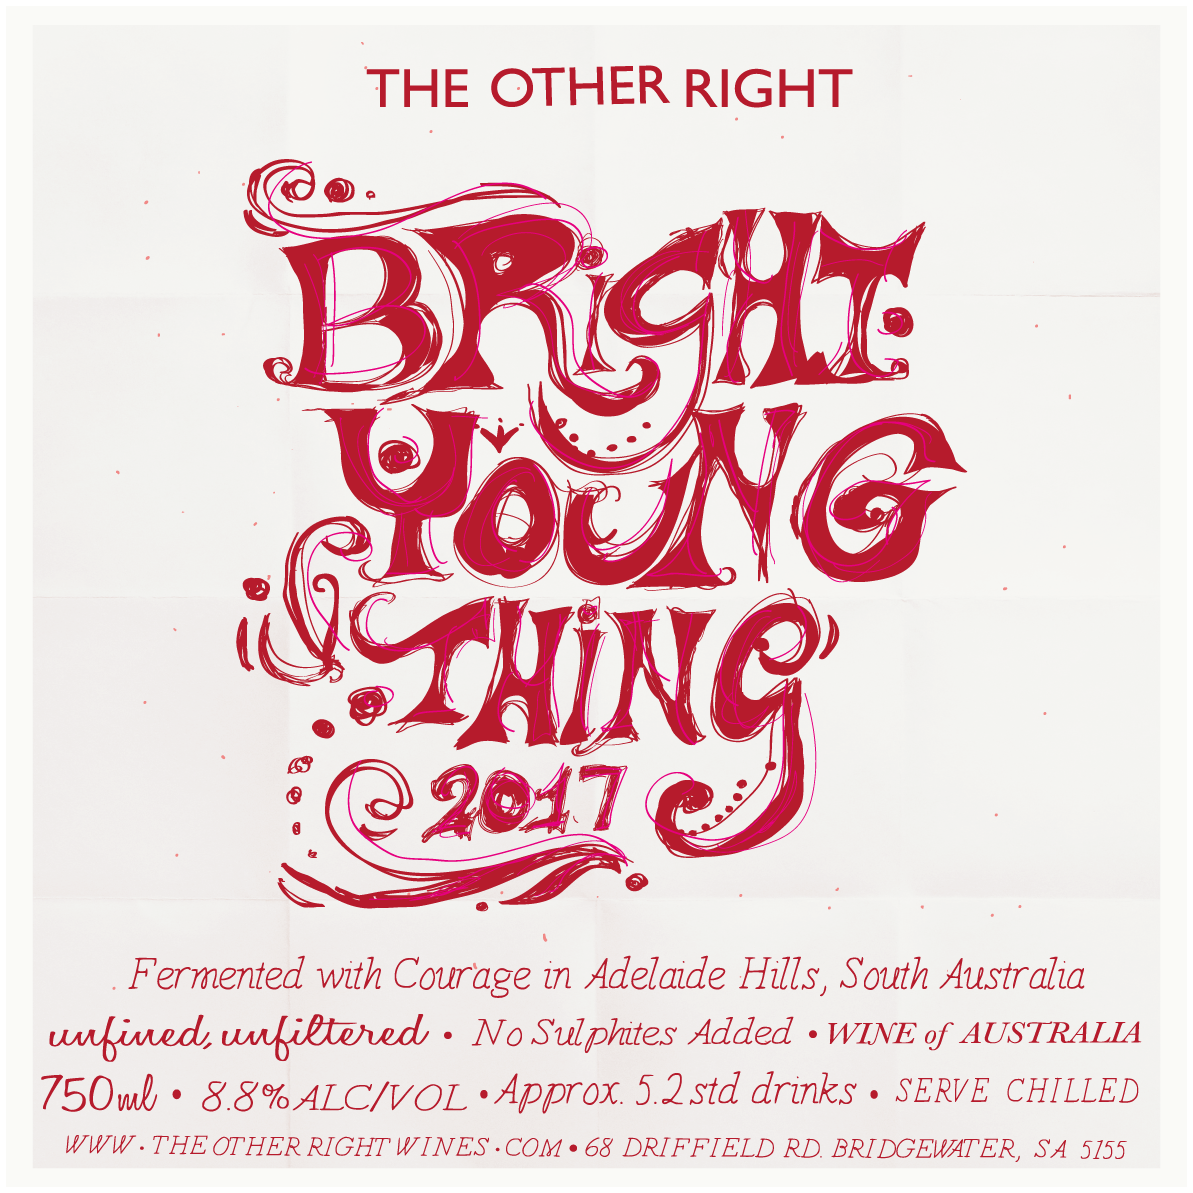 The Other Right WInes - Bright Side of Life